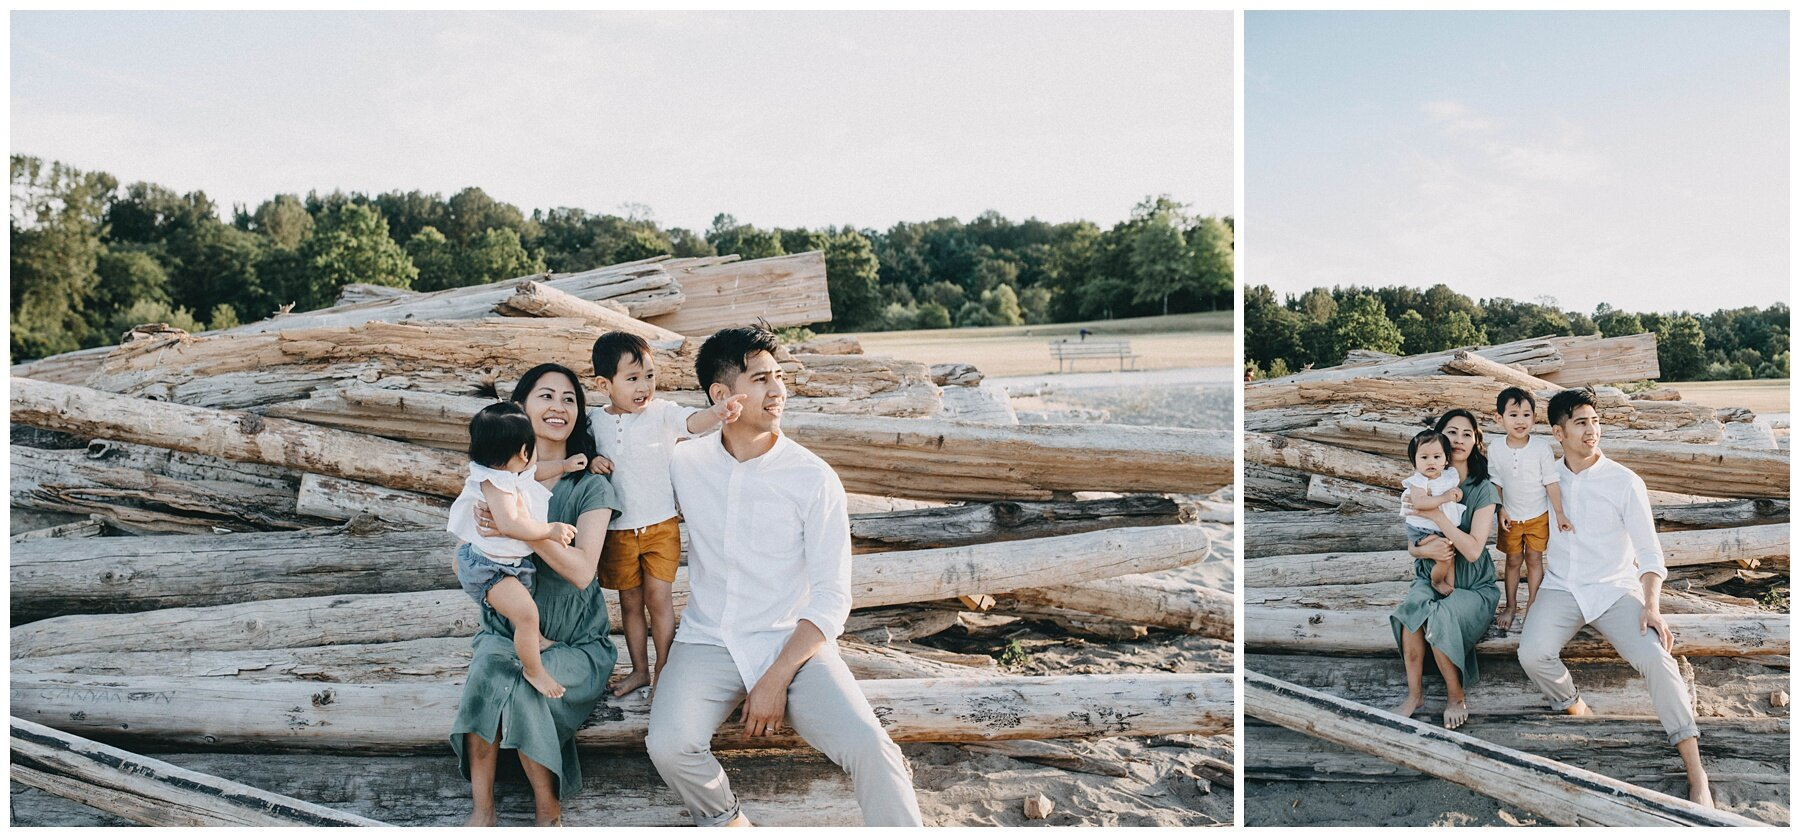 Vancouver Family Photographer || Jericho Beach Vancouver Family Photos_1295.jpg